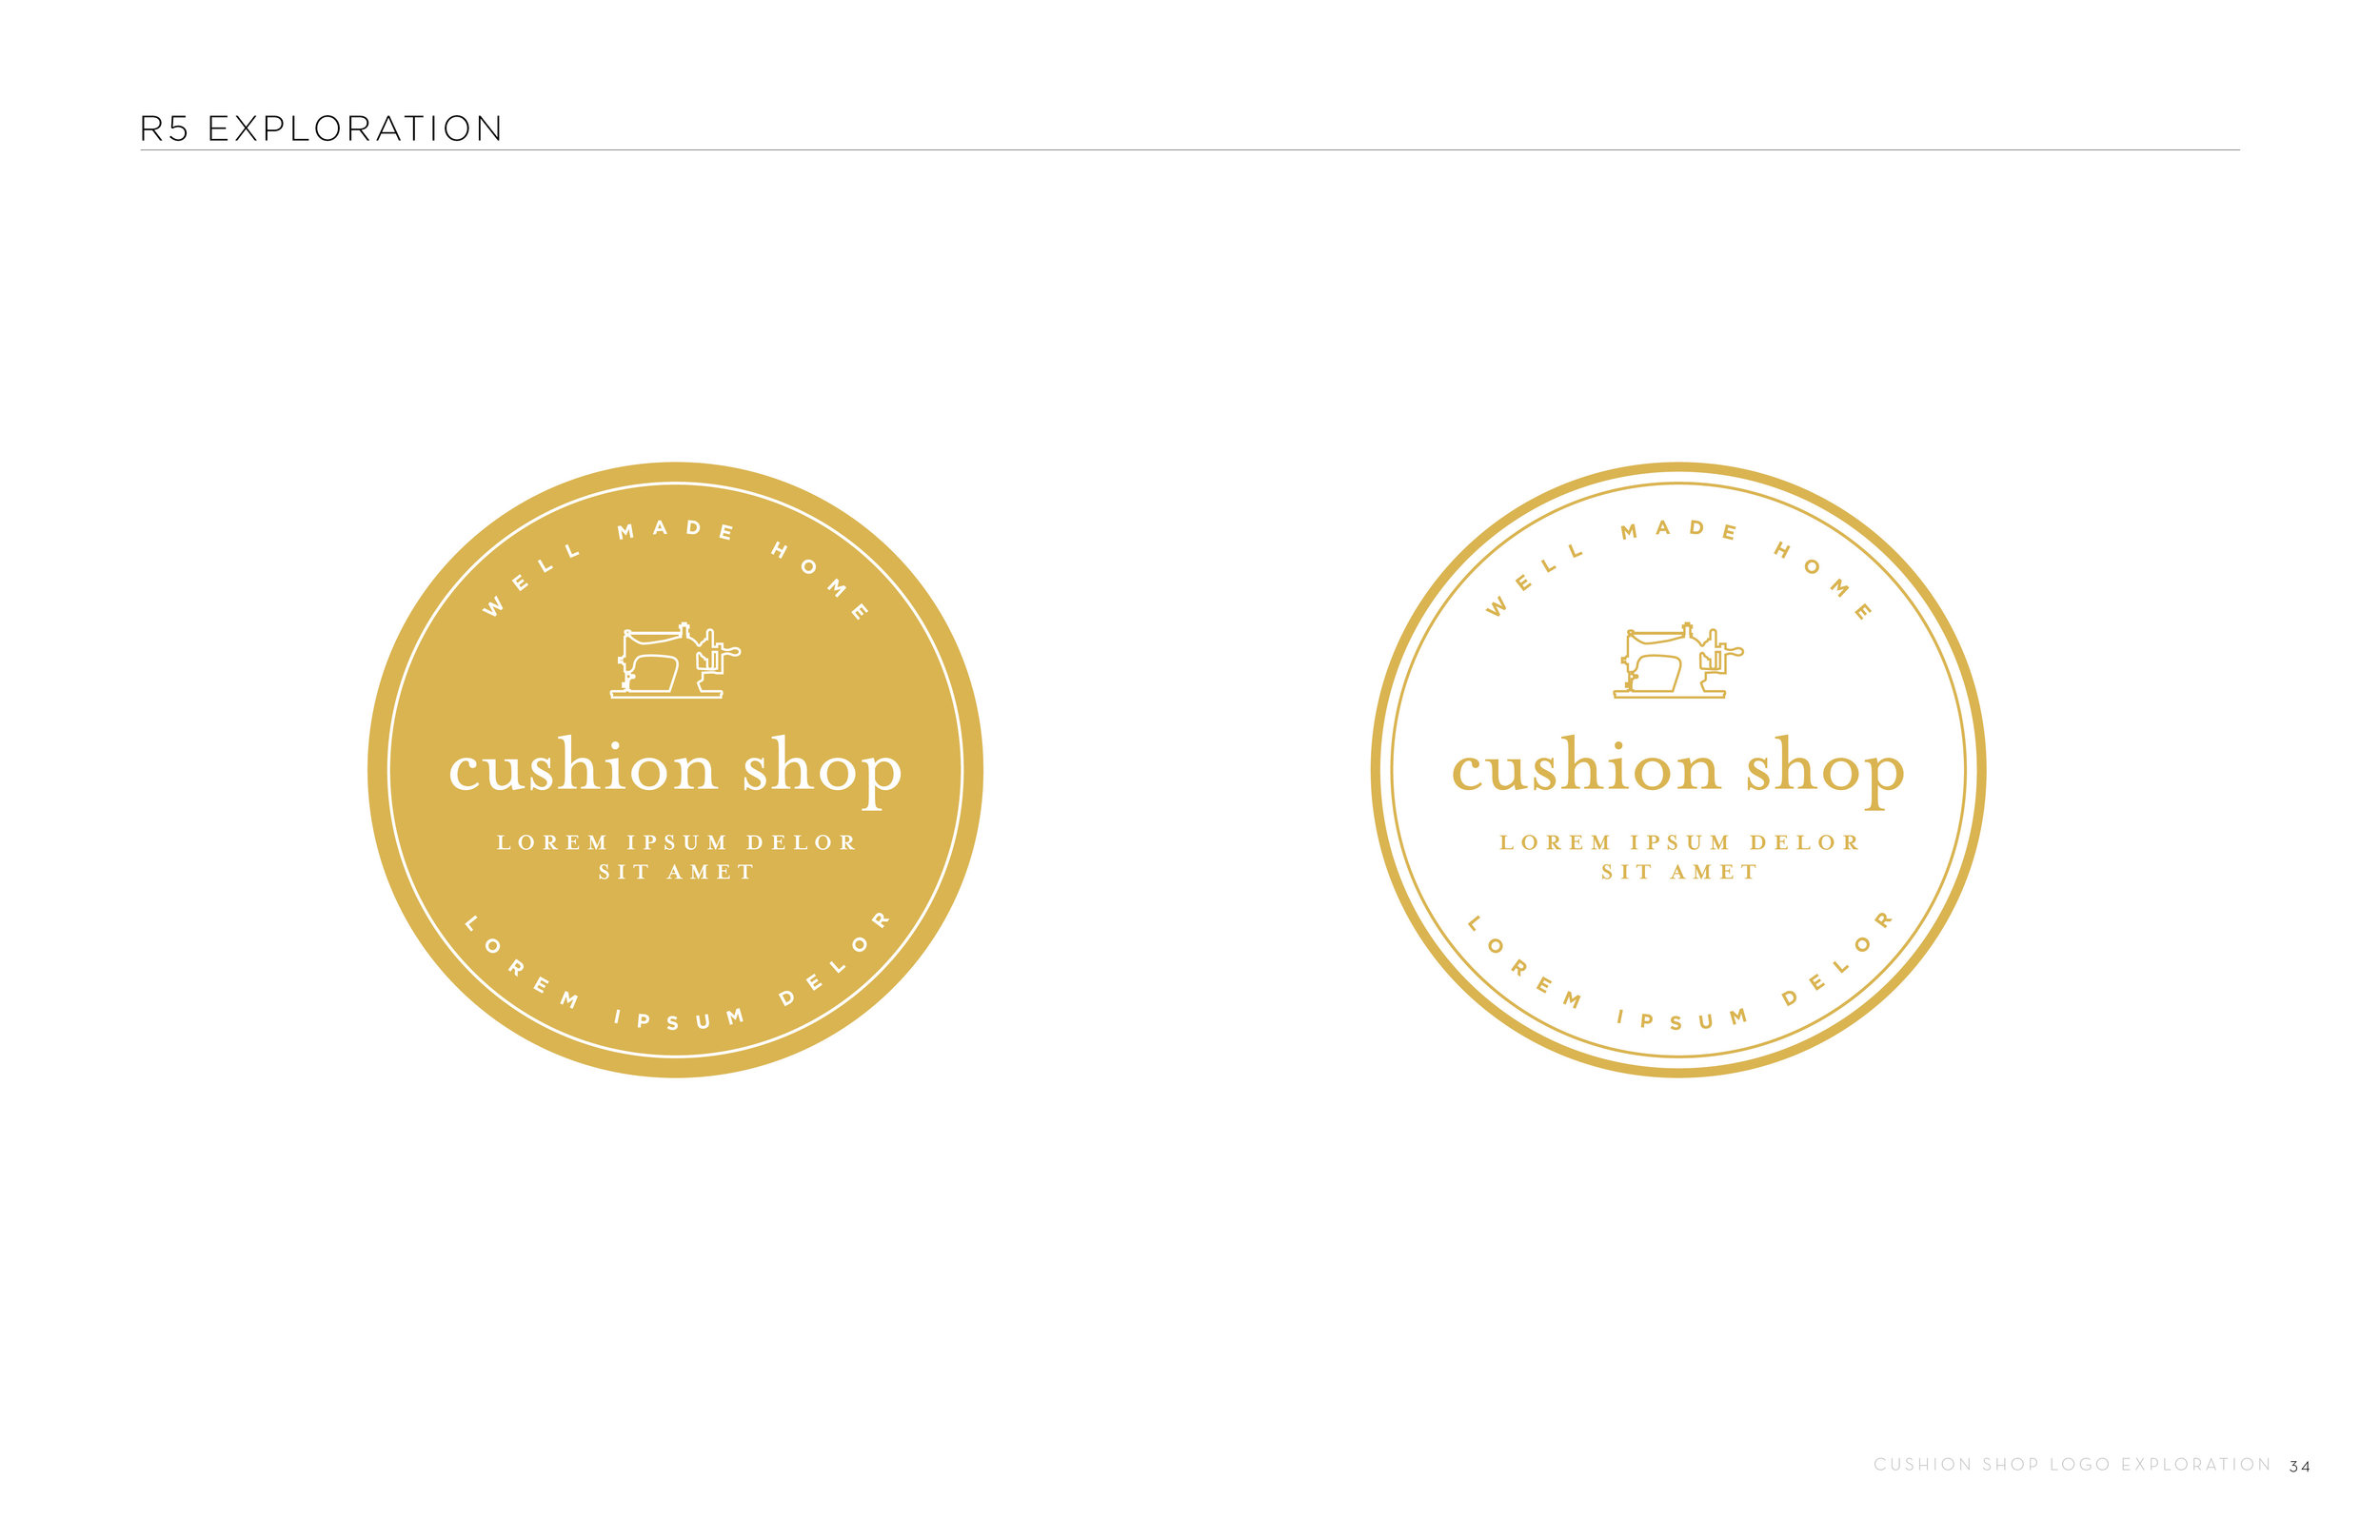 Cushion Shop_Logo Concepts_R10_34.jpg